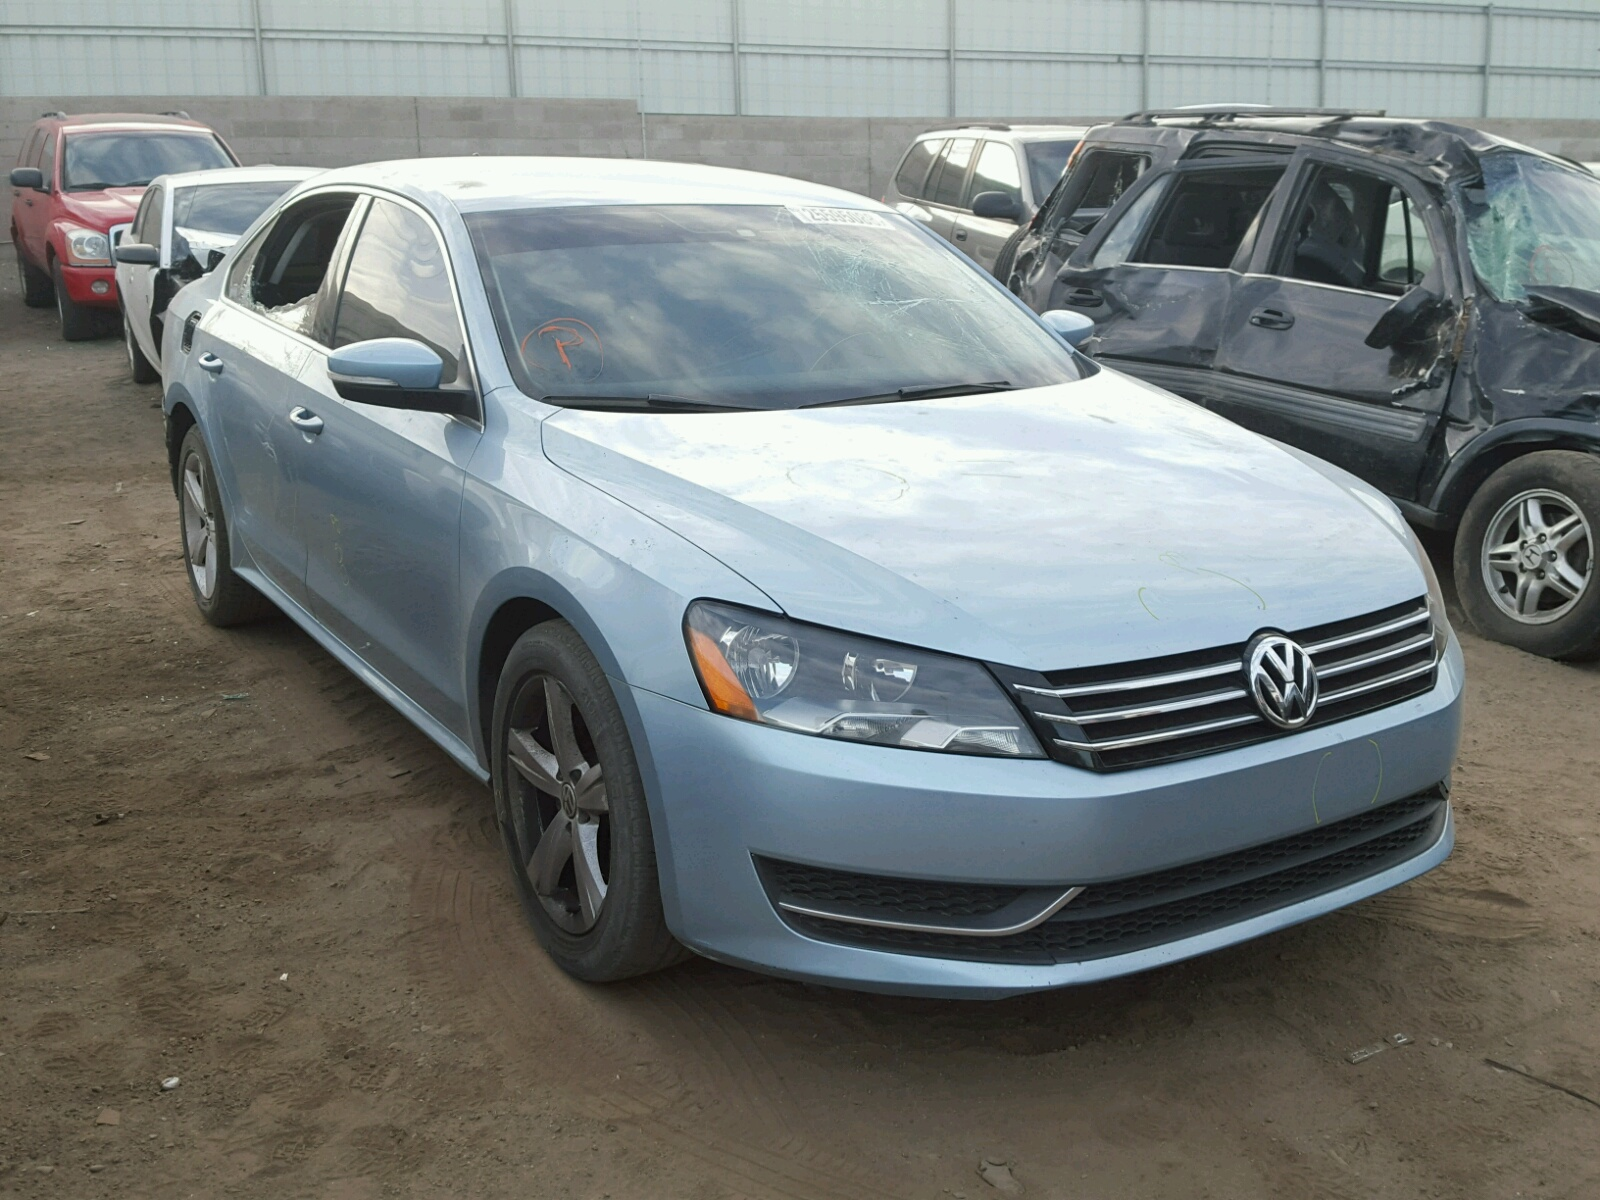 interior new image gti finance nm specials deals offers vw and golf original lease volkswagen albuquerque